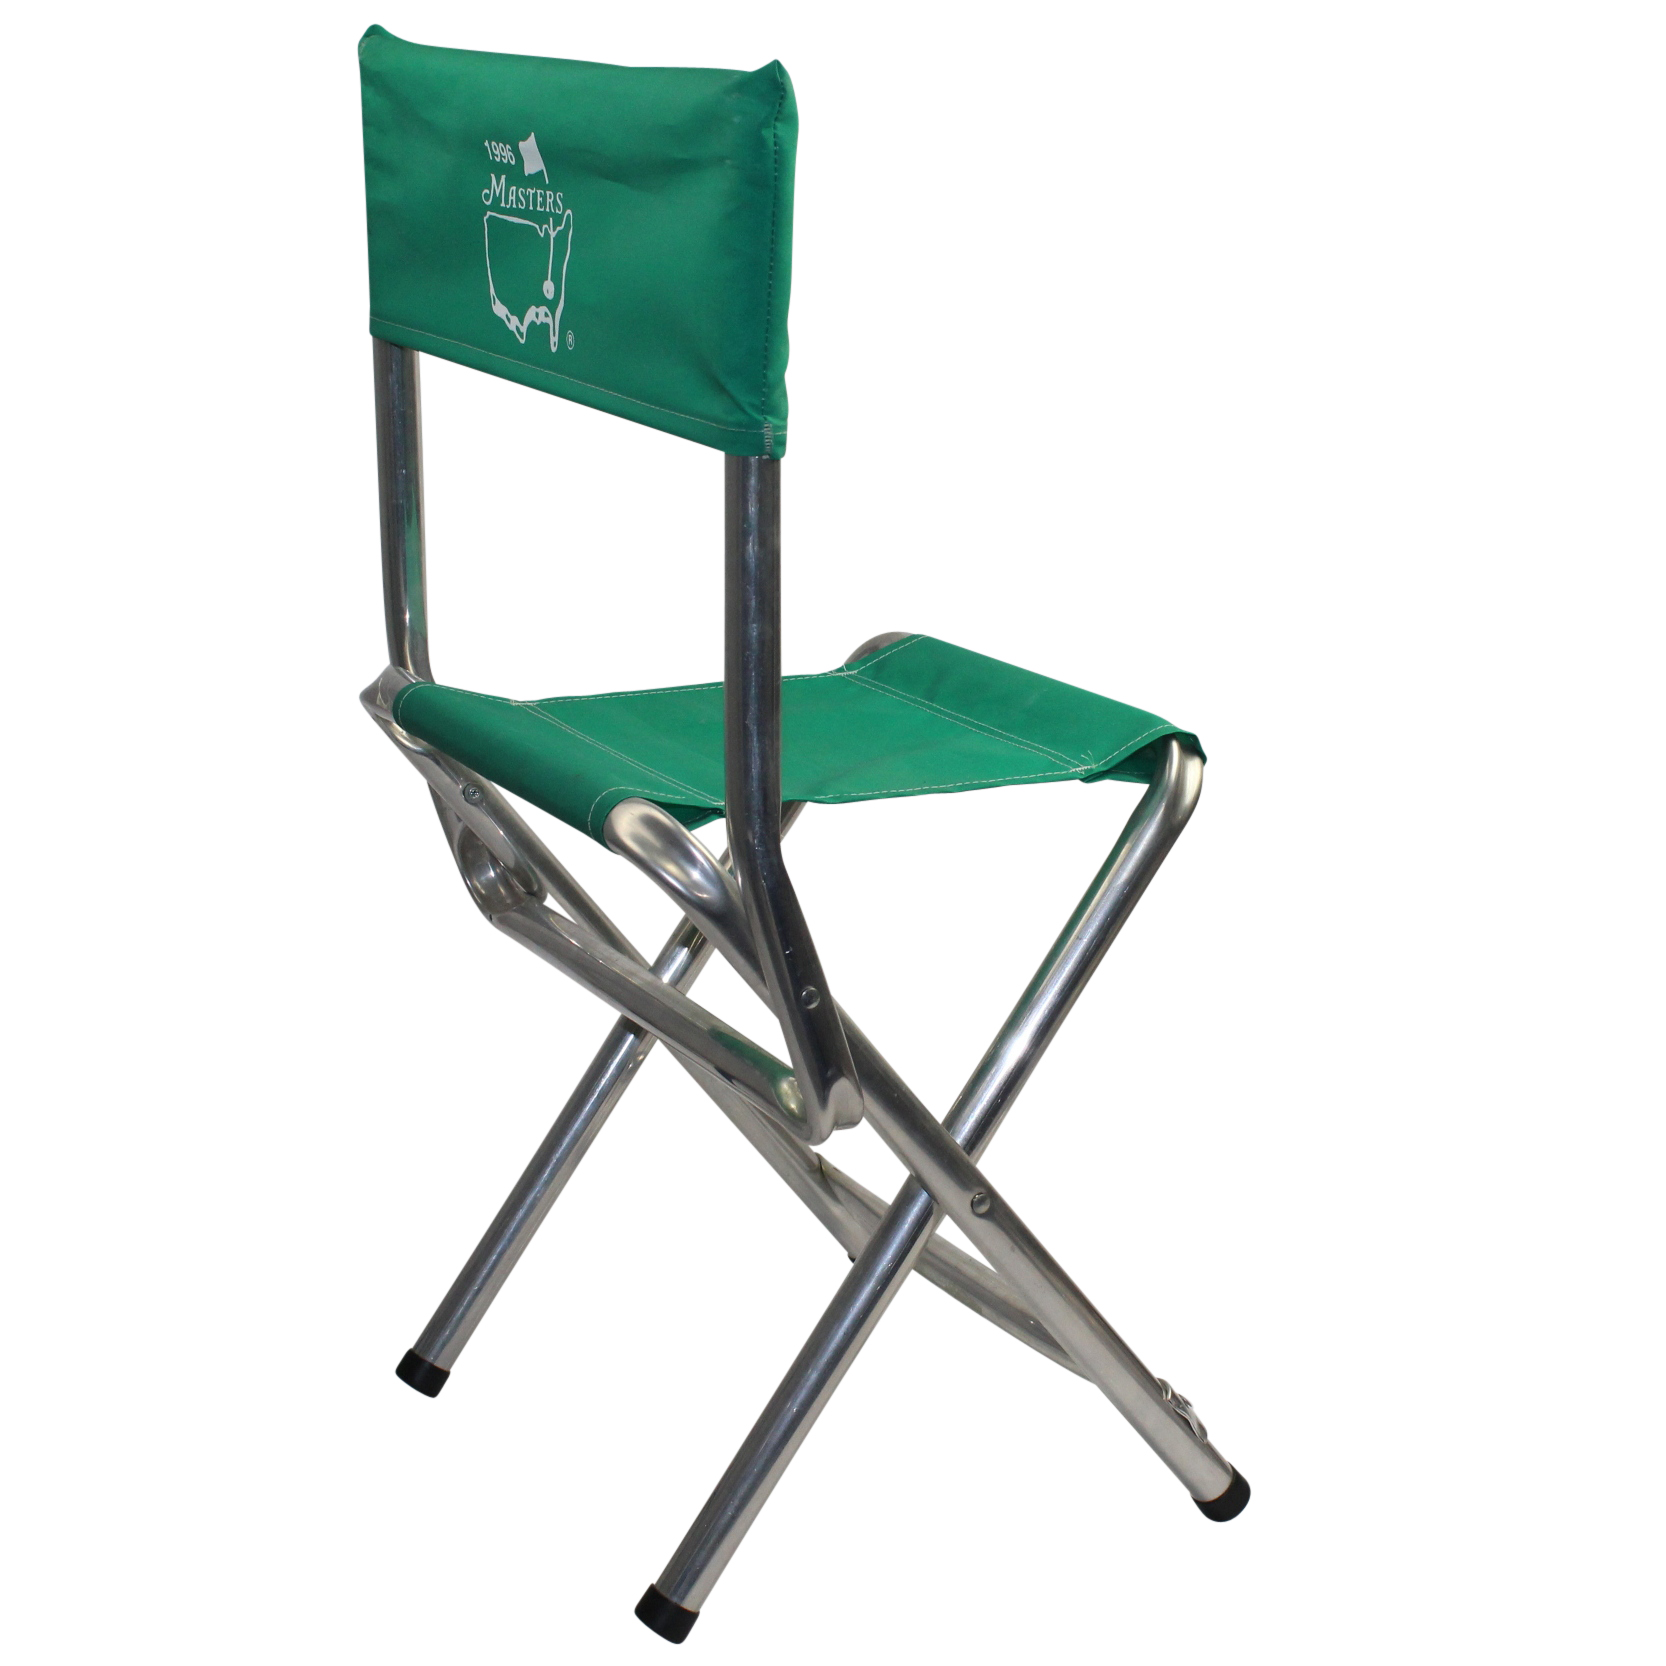 portable chairs for golf tournaments used massage sale lot detail 1996 masters tournament chair